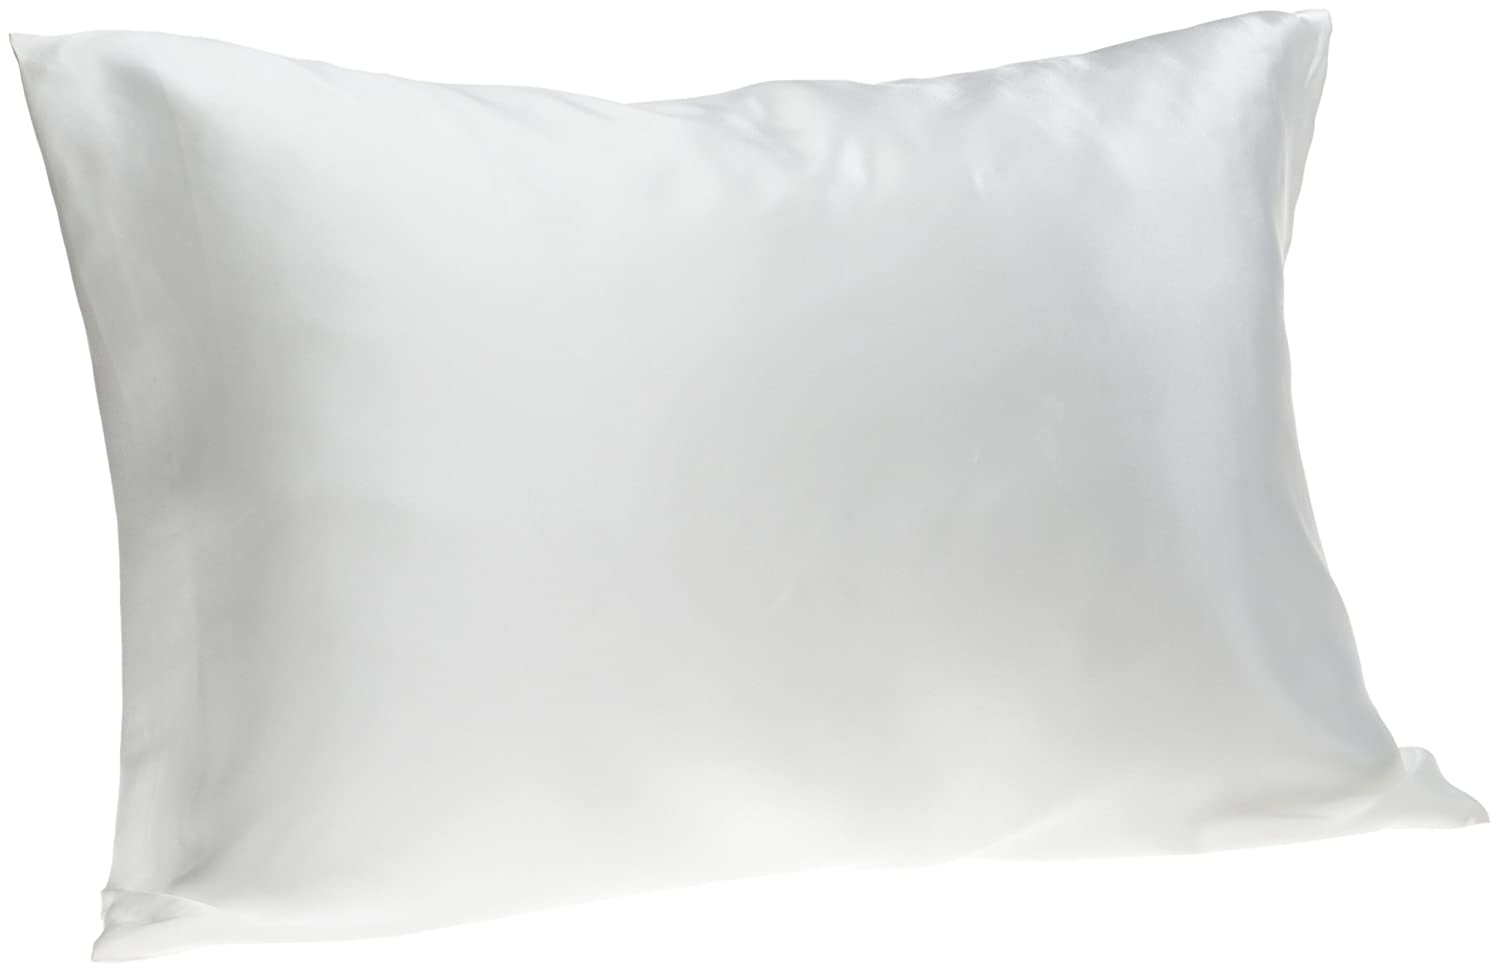 Elegant Satin or Silk Pillowcases For Your Home | Seekyt